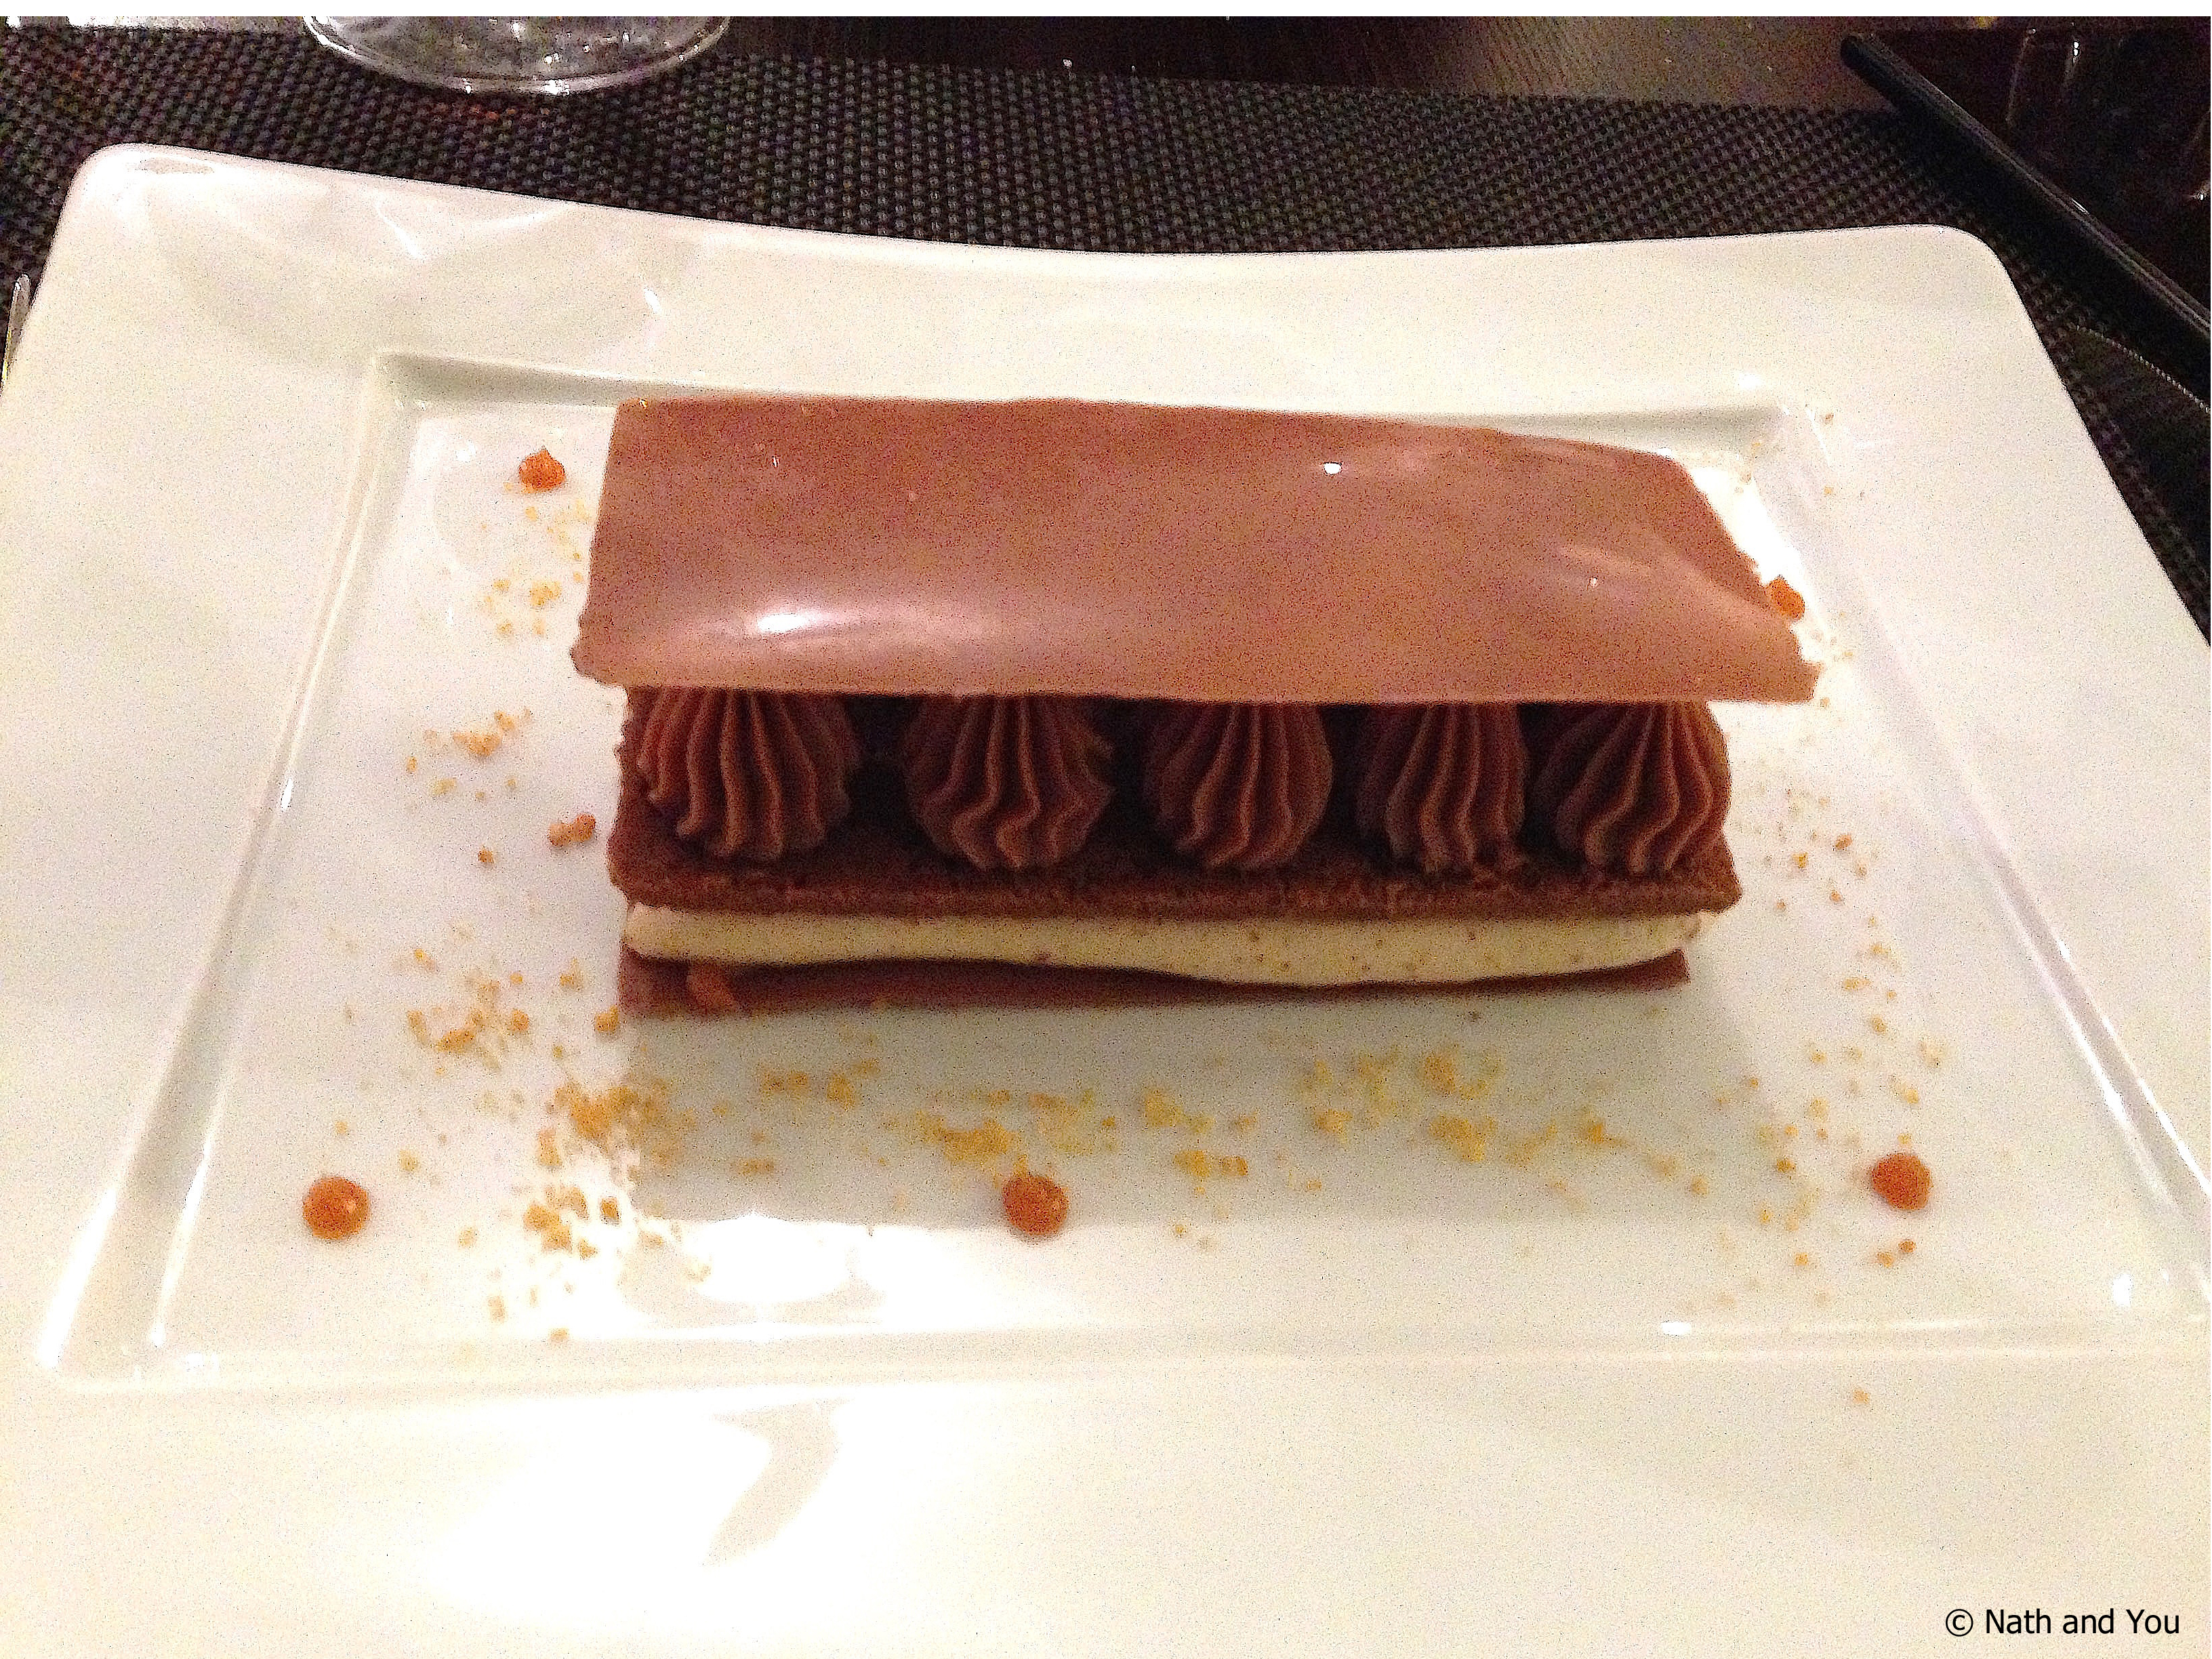 millefeuille-chocolat-dessert-au-rythme-du-temps-nath-and-you